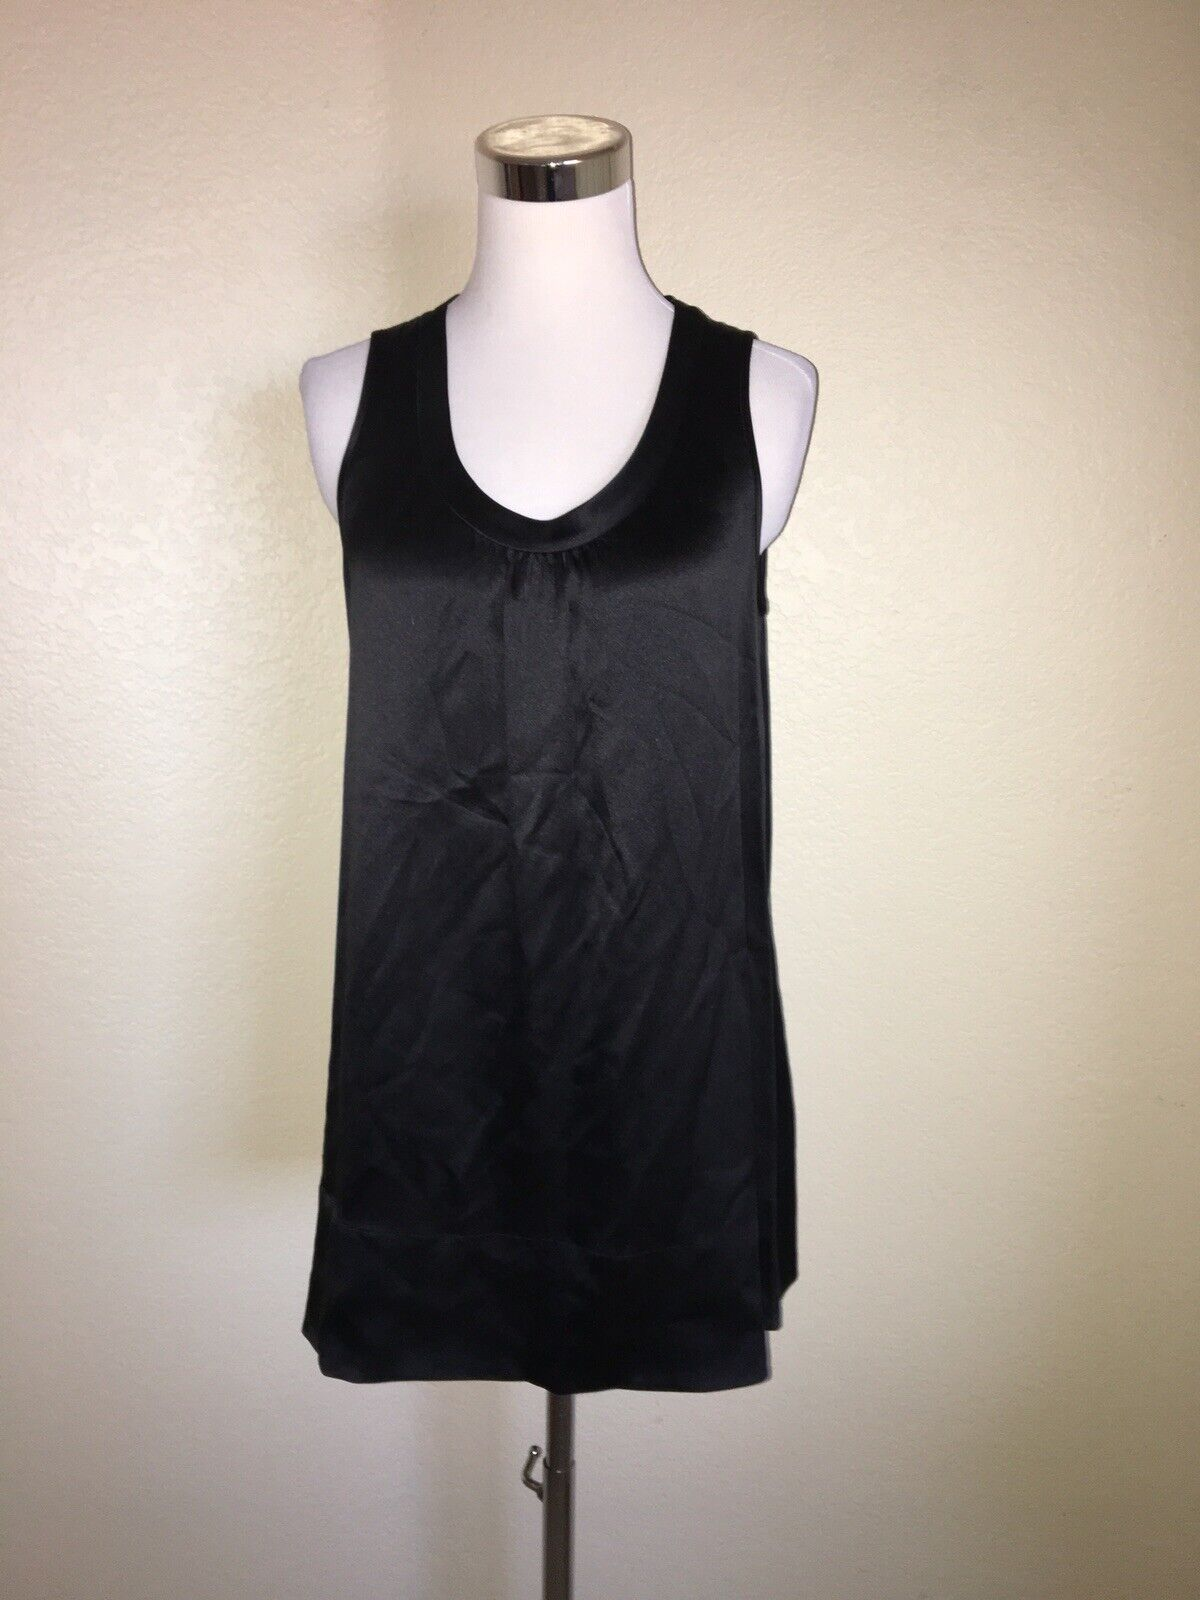 Eileen Fisher schwarz Silk Crepe Back Satin Sleeveless Tunic Tank Top Small NEW